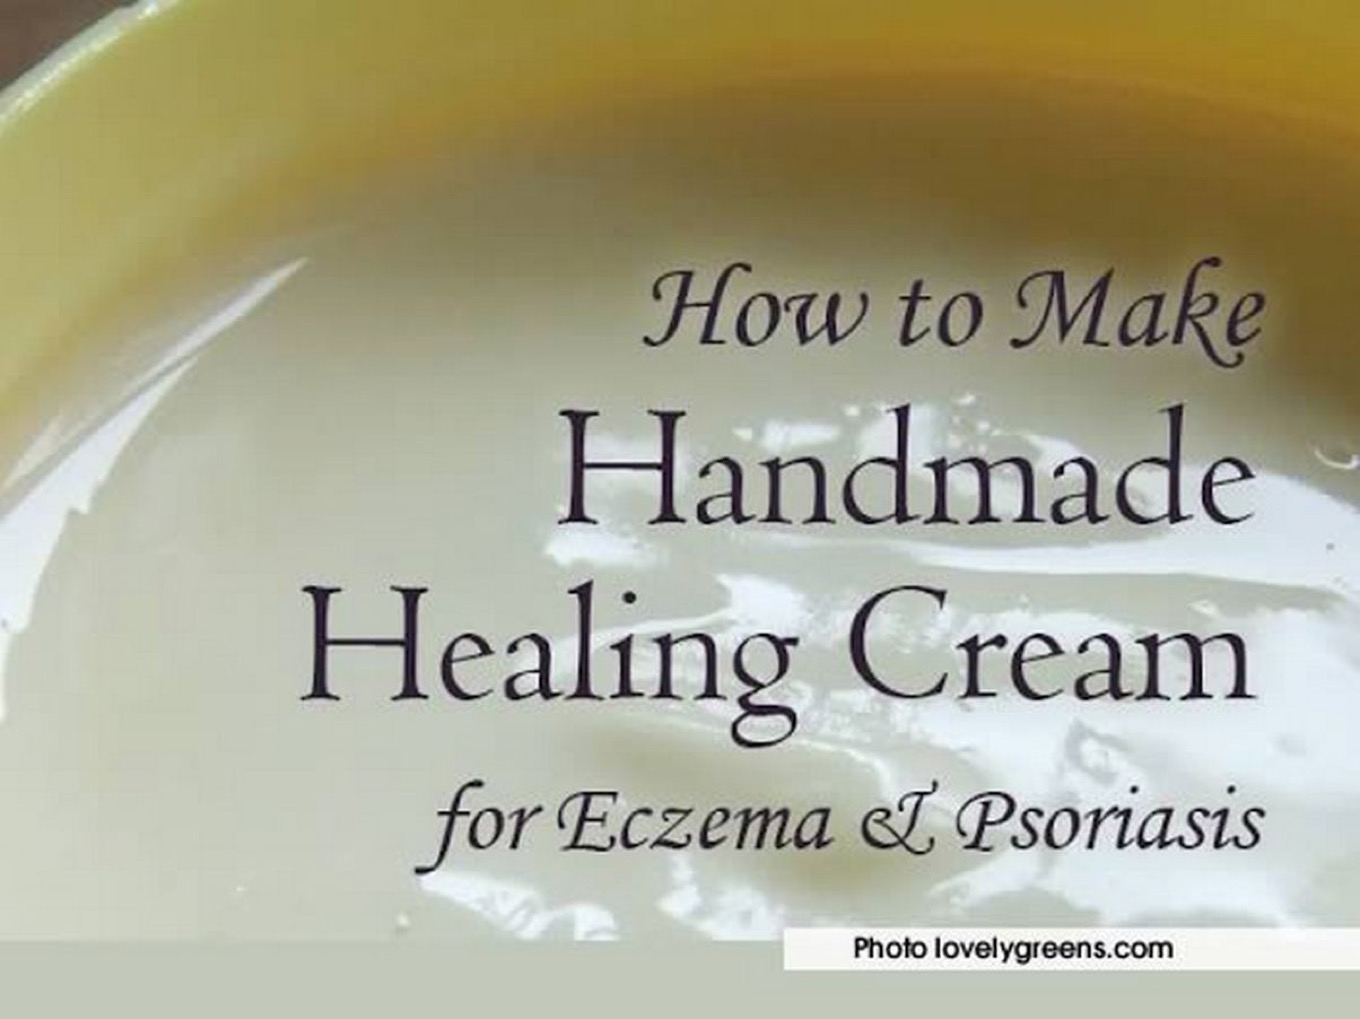 handmade-eczema-cream-by-lovelygreens-com1-10